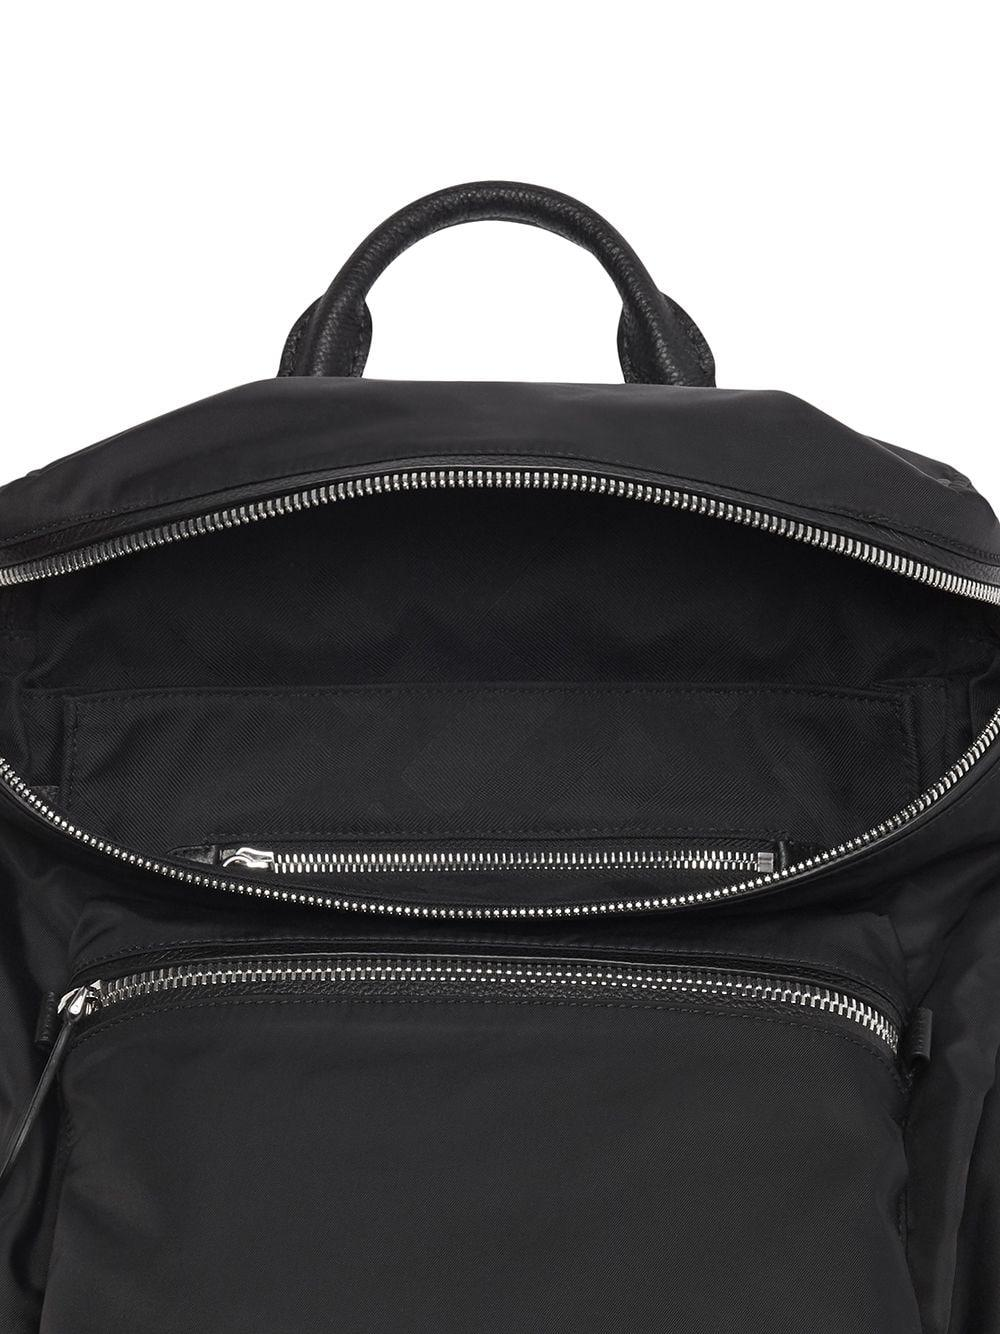 Lyst - Burberry Zip-top Leather Trim Showerproof Backpack in Black for Men  - Save 12.957746478873233% 5a3015c4ed7a7